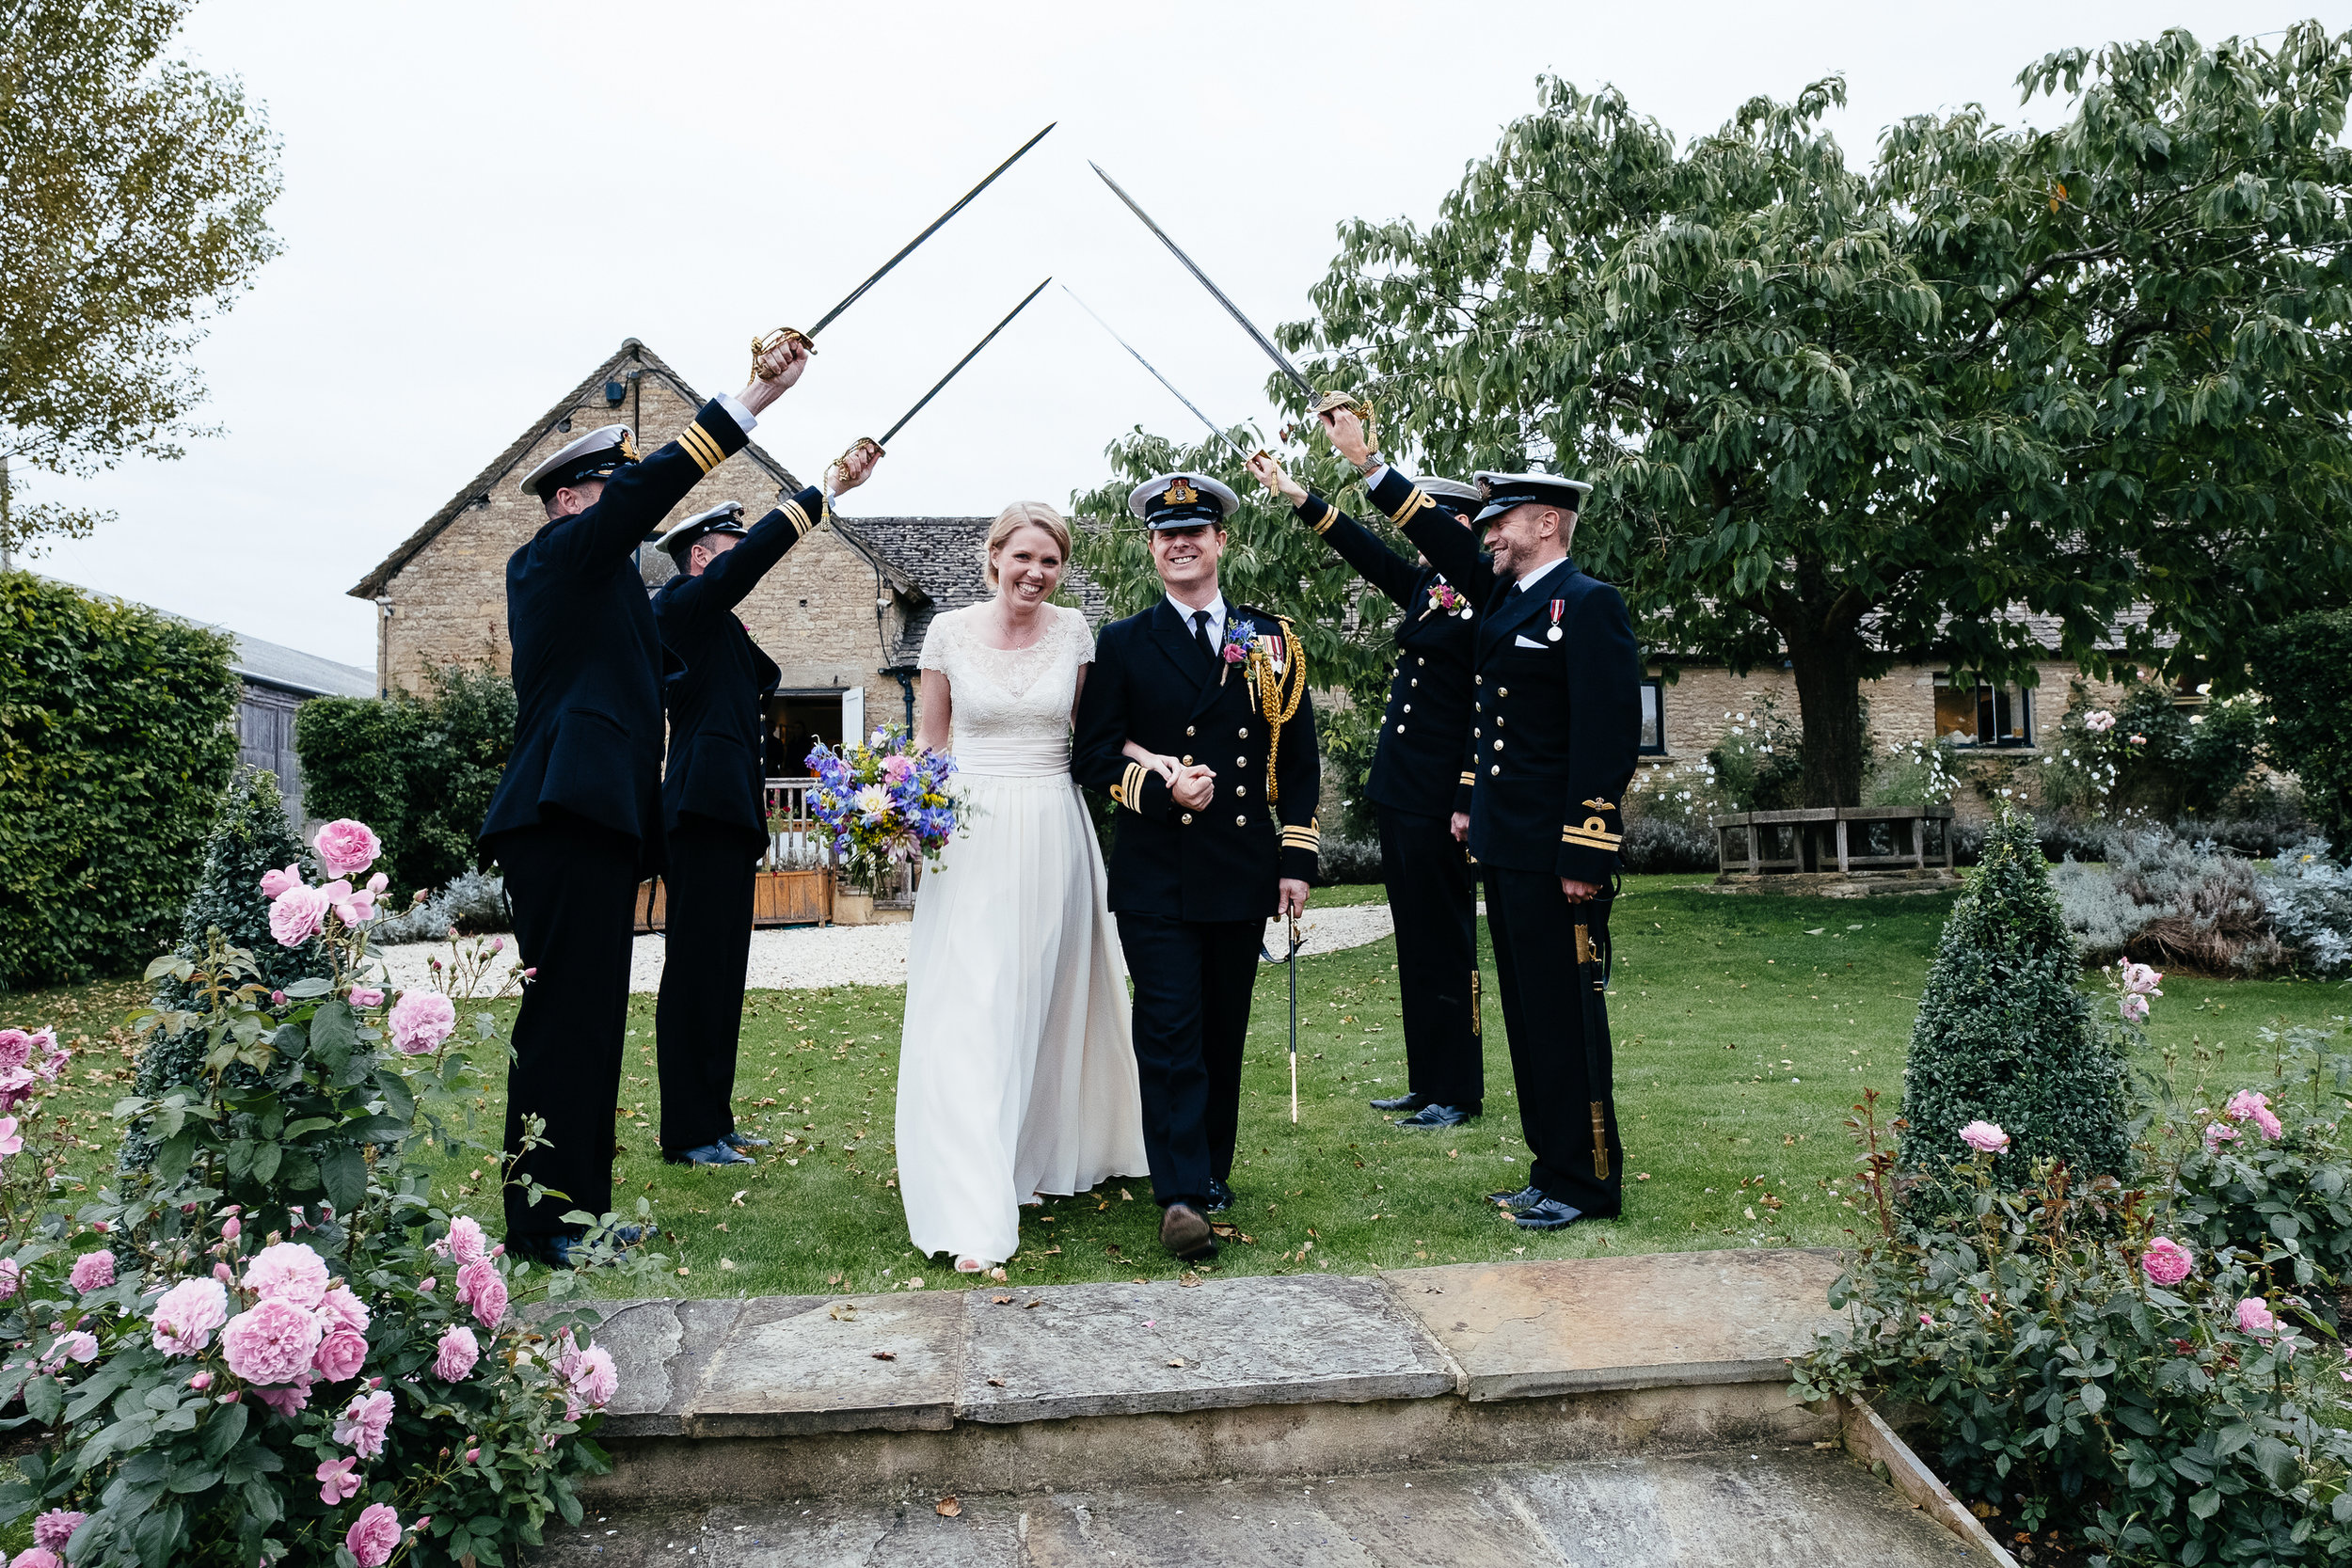 A guard of honor for the bride and groom at Merriscourt Wedding Venue, Oxfordshire